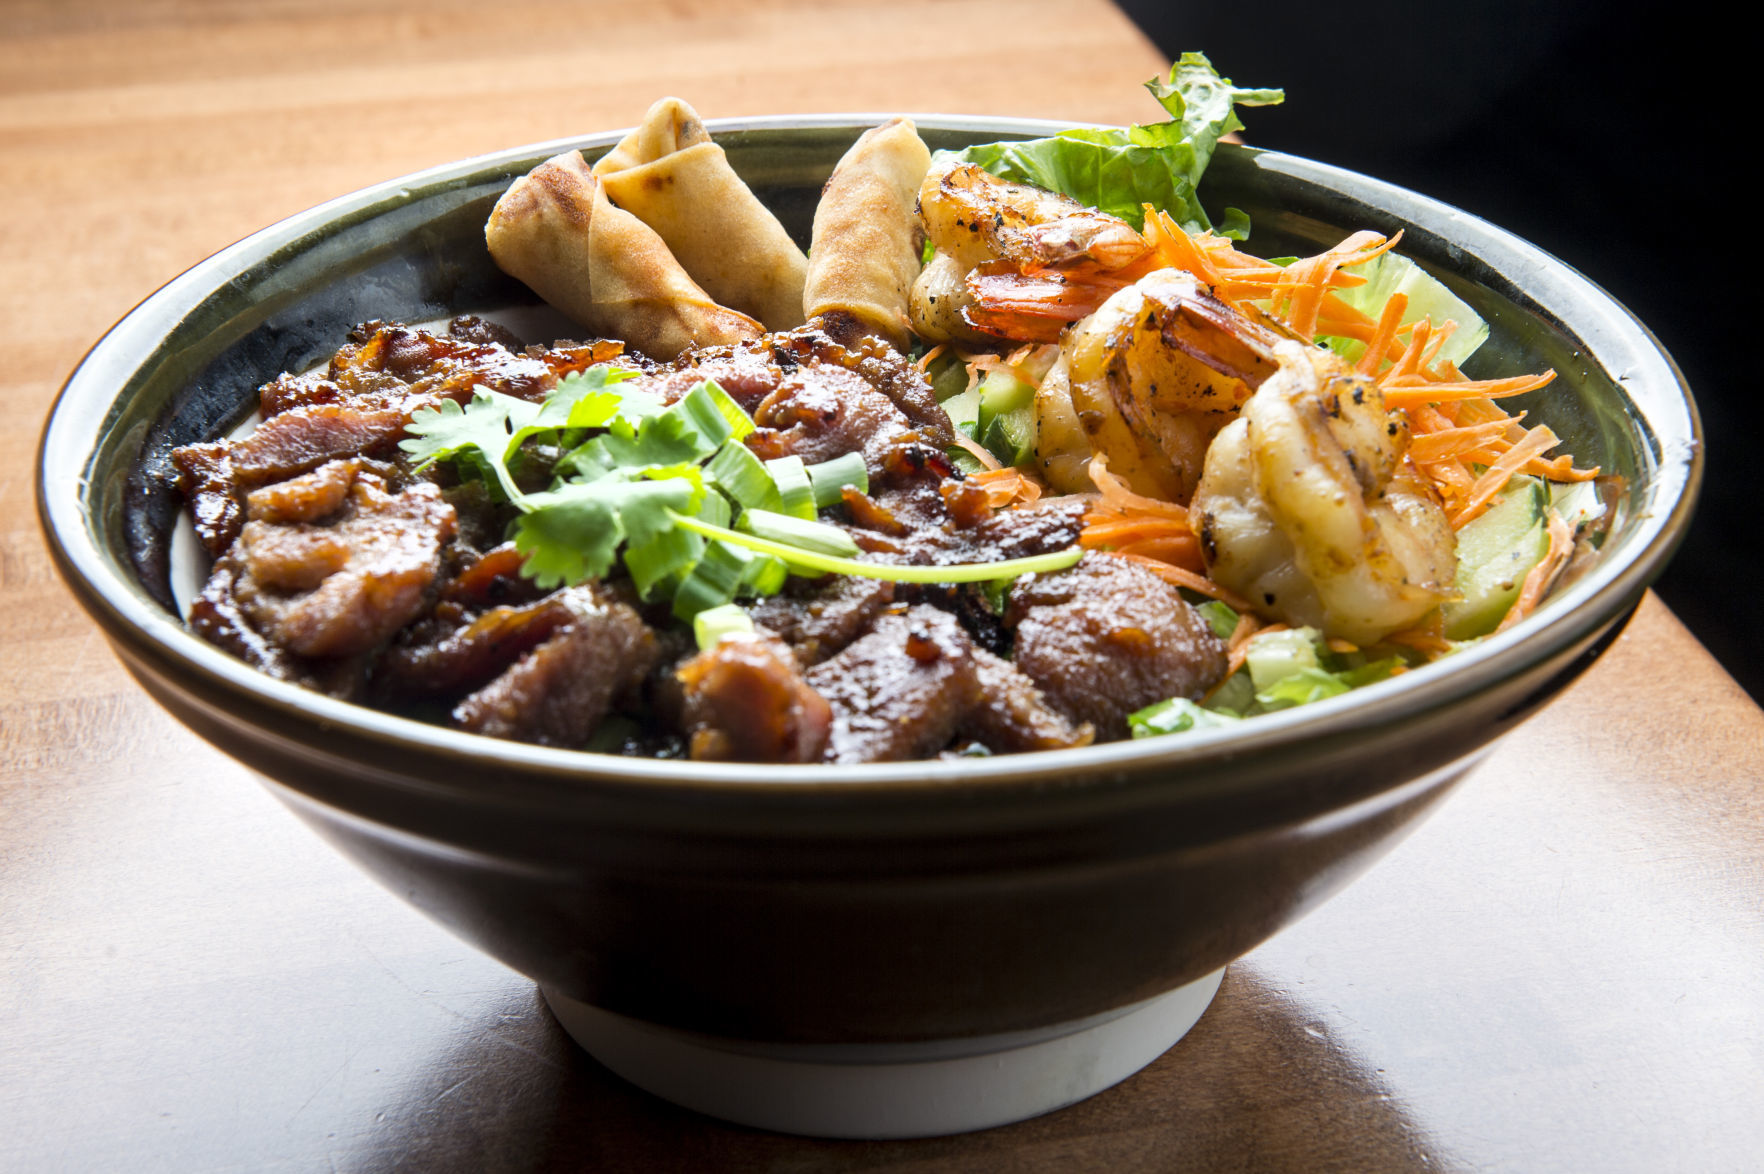 Lincoln S 15 Best Asian African And South Central American Restaurants Dining Journalstar Com